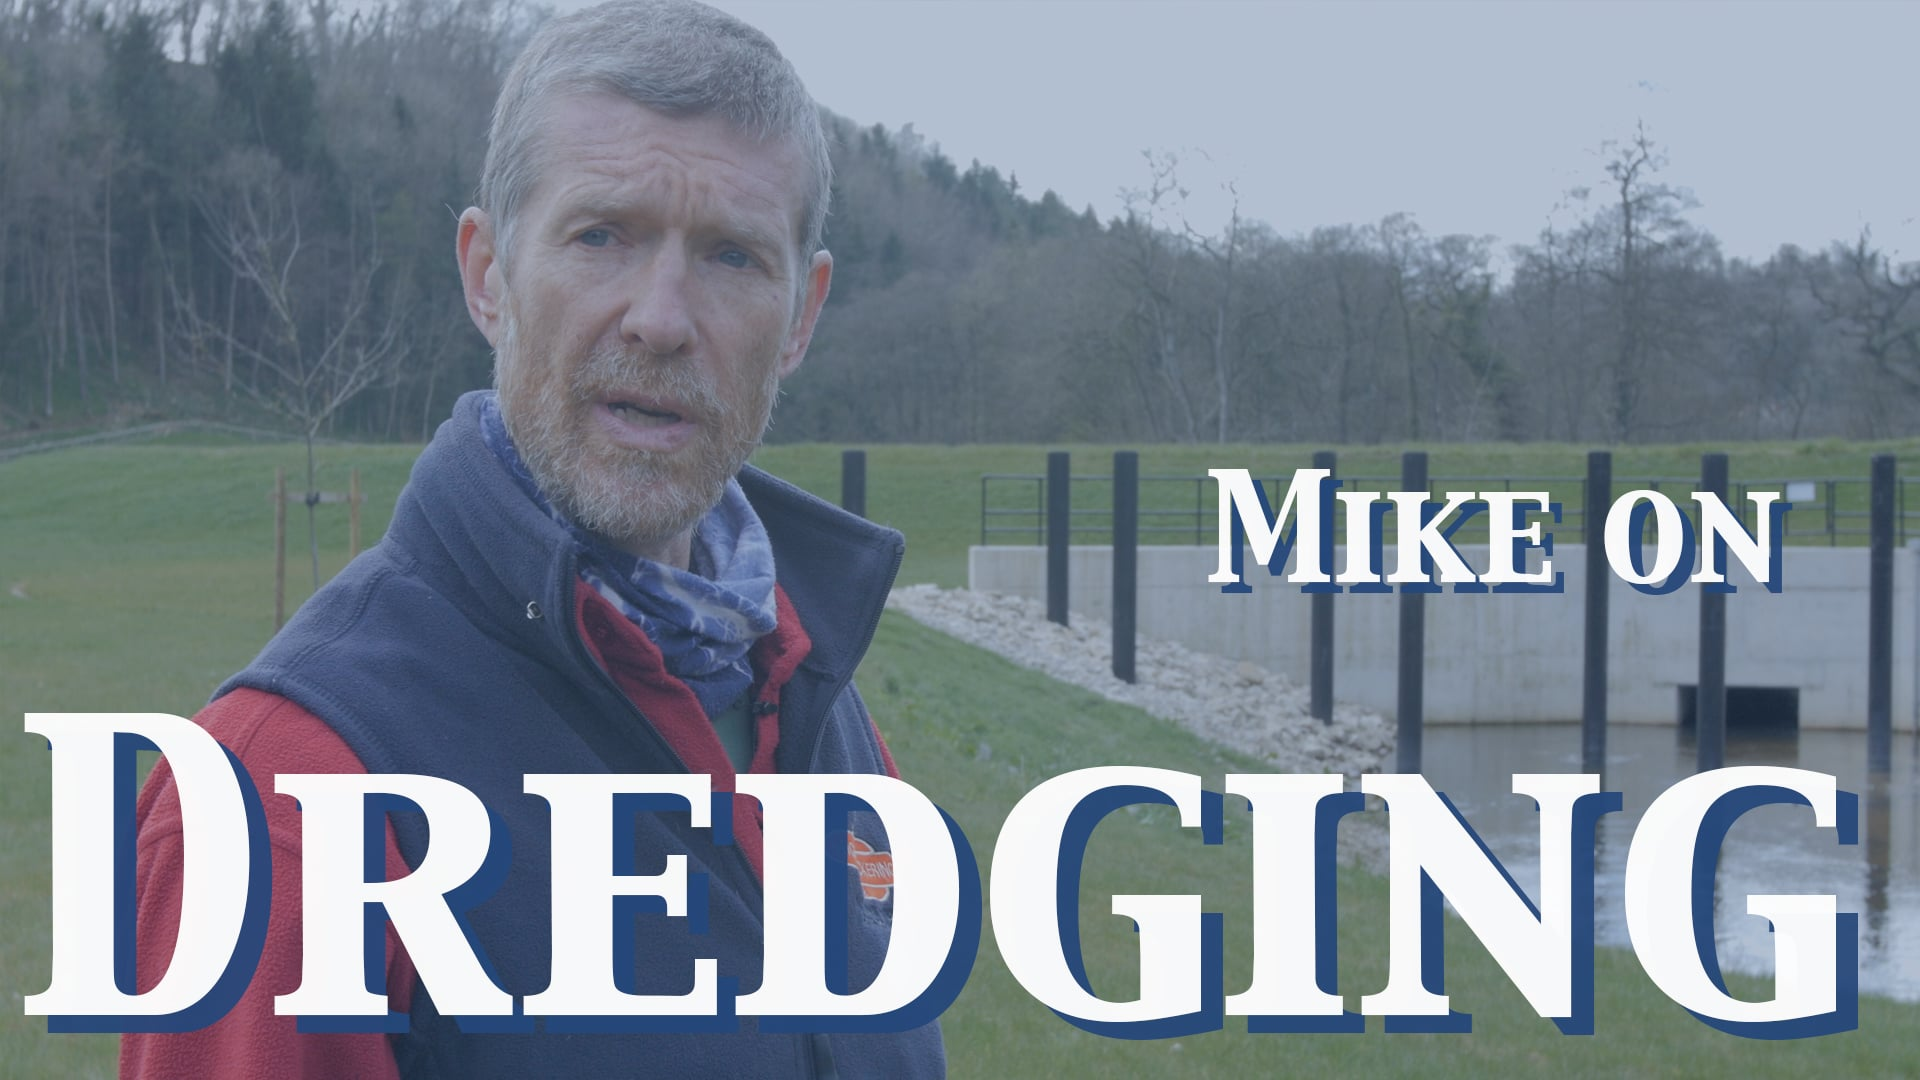 Mike On Dredging